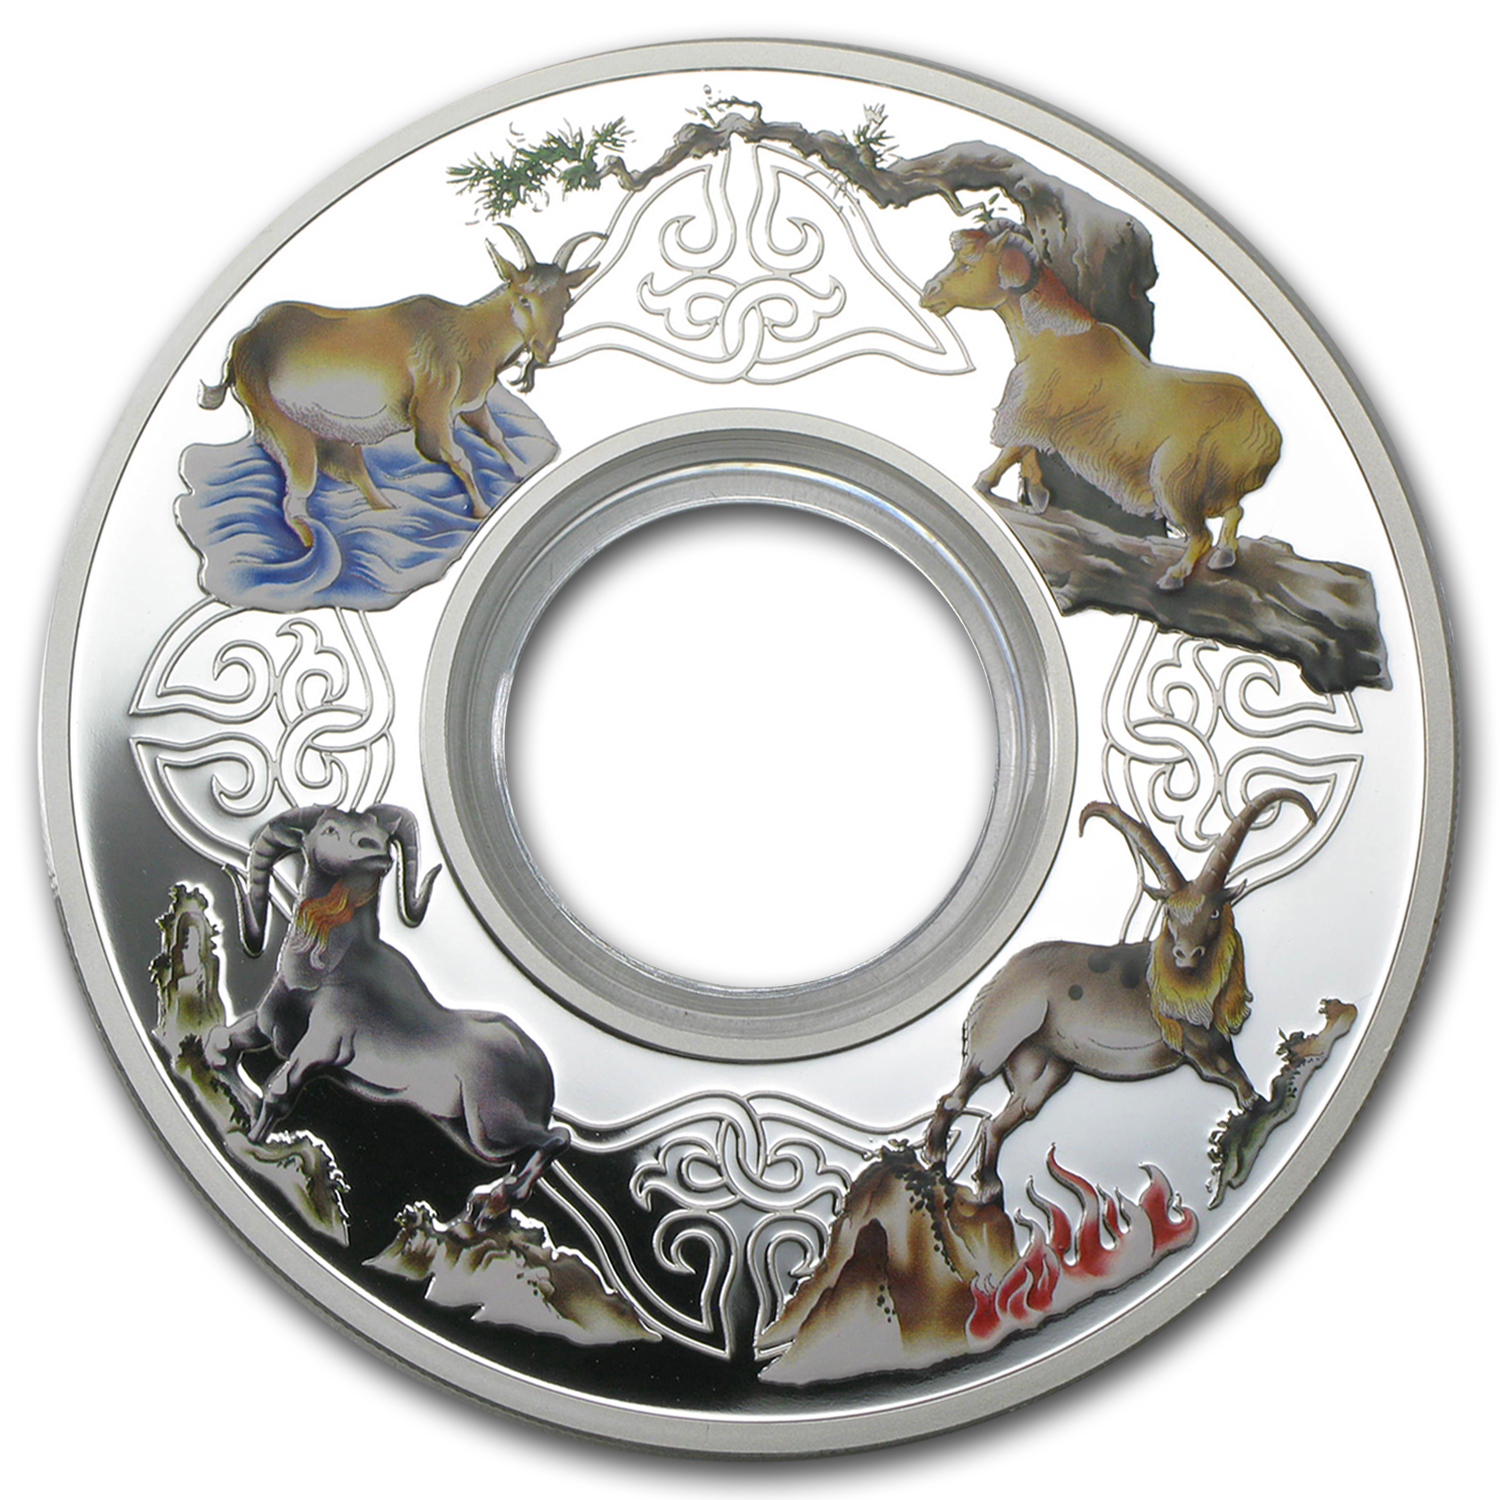 2015 Tokelau 2 oz Proof Silver $10 Elemental Goats Ring Coin